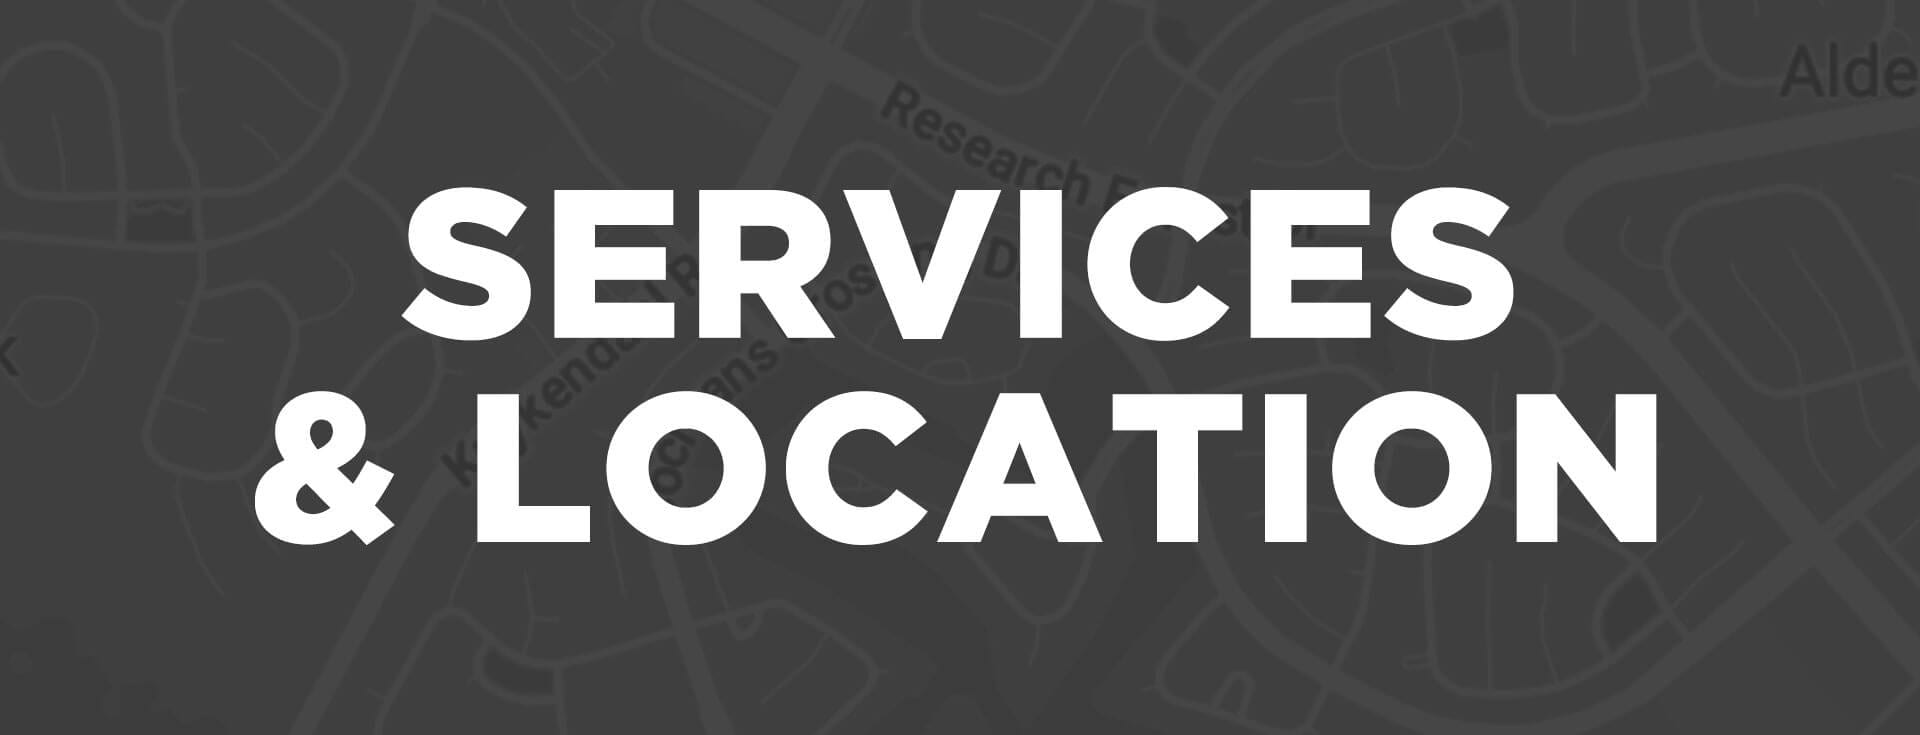 Services & Location